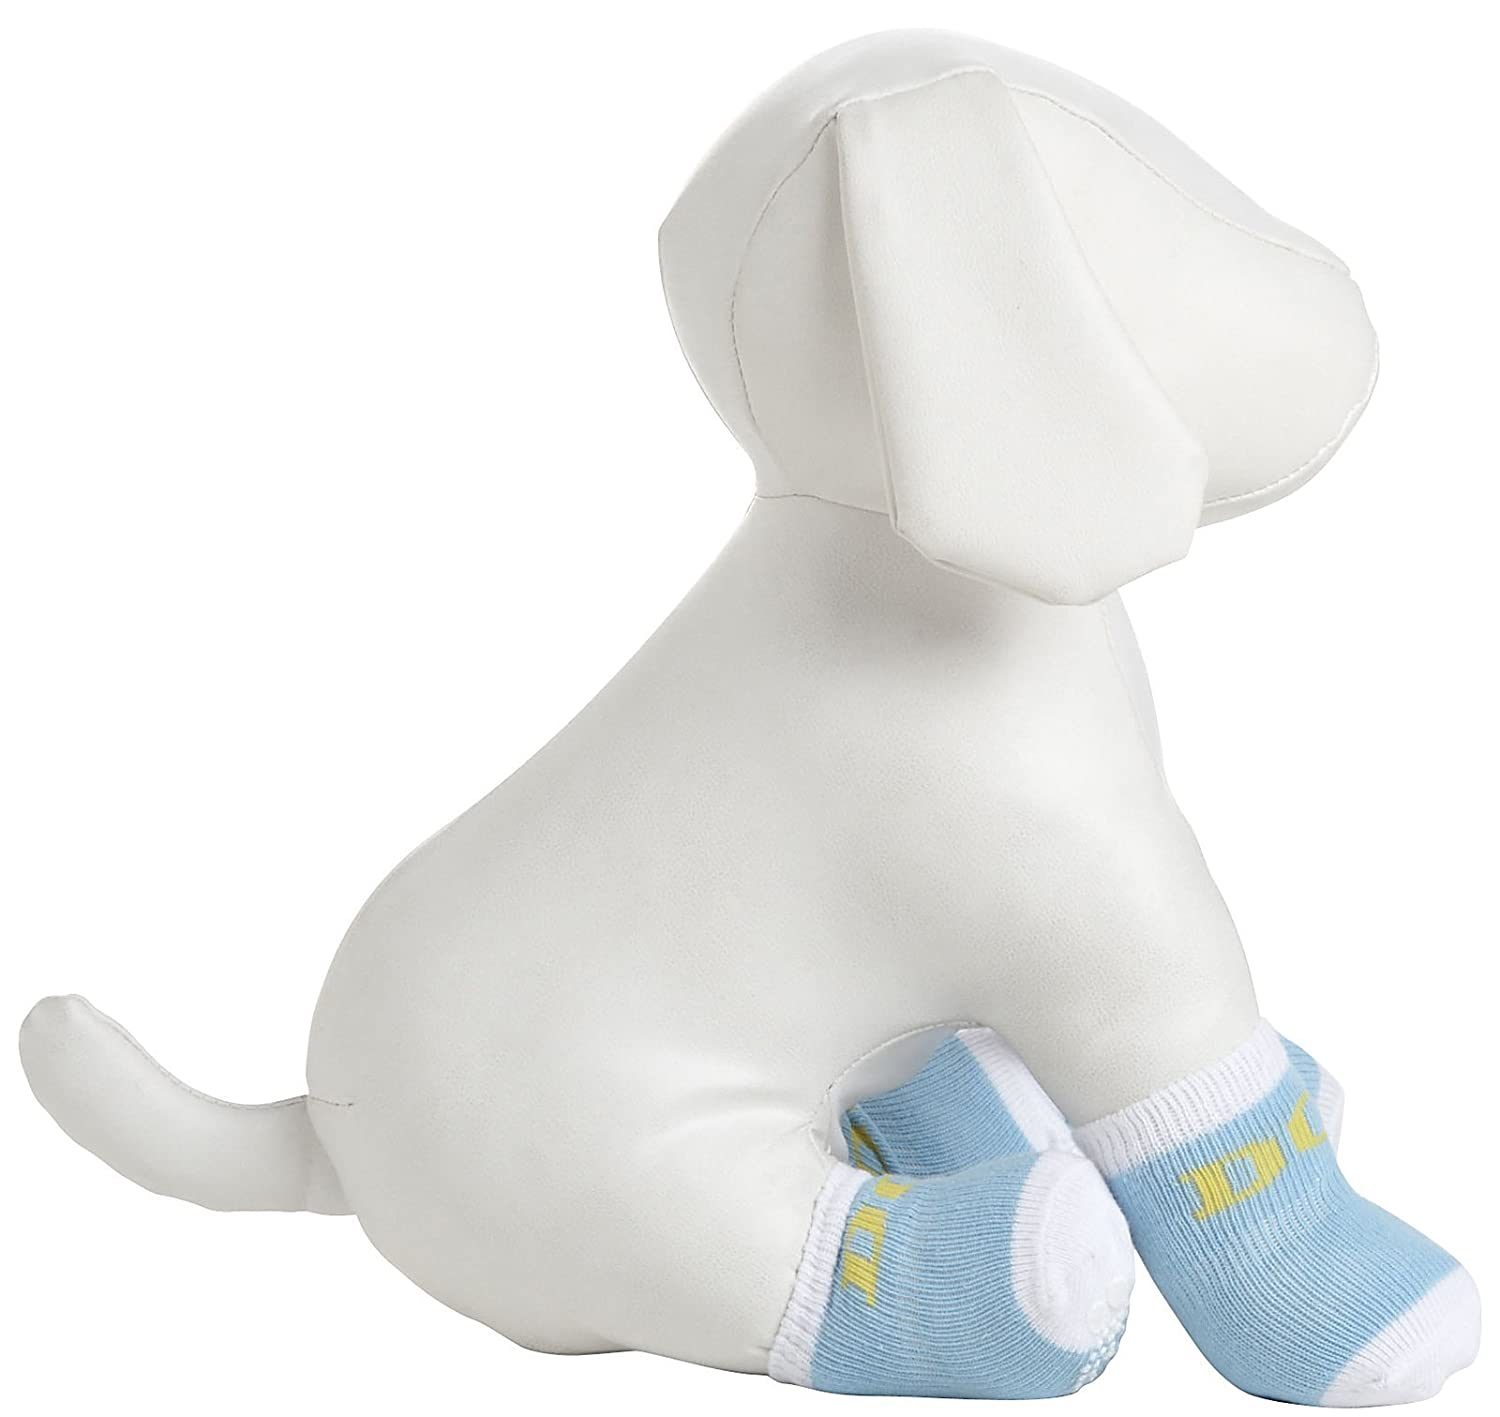 Pet Life DPF09922 4-Pack Anti-Skid Soft Cotton Dog Socks with Rubber Sole Grip, X-Small Small, bluee White